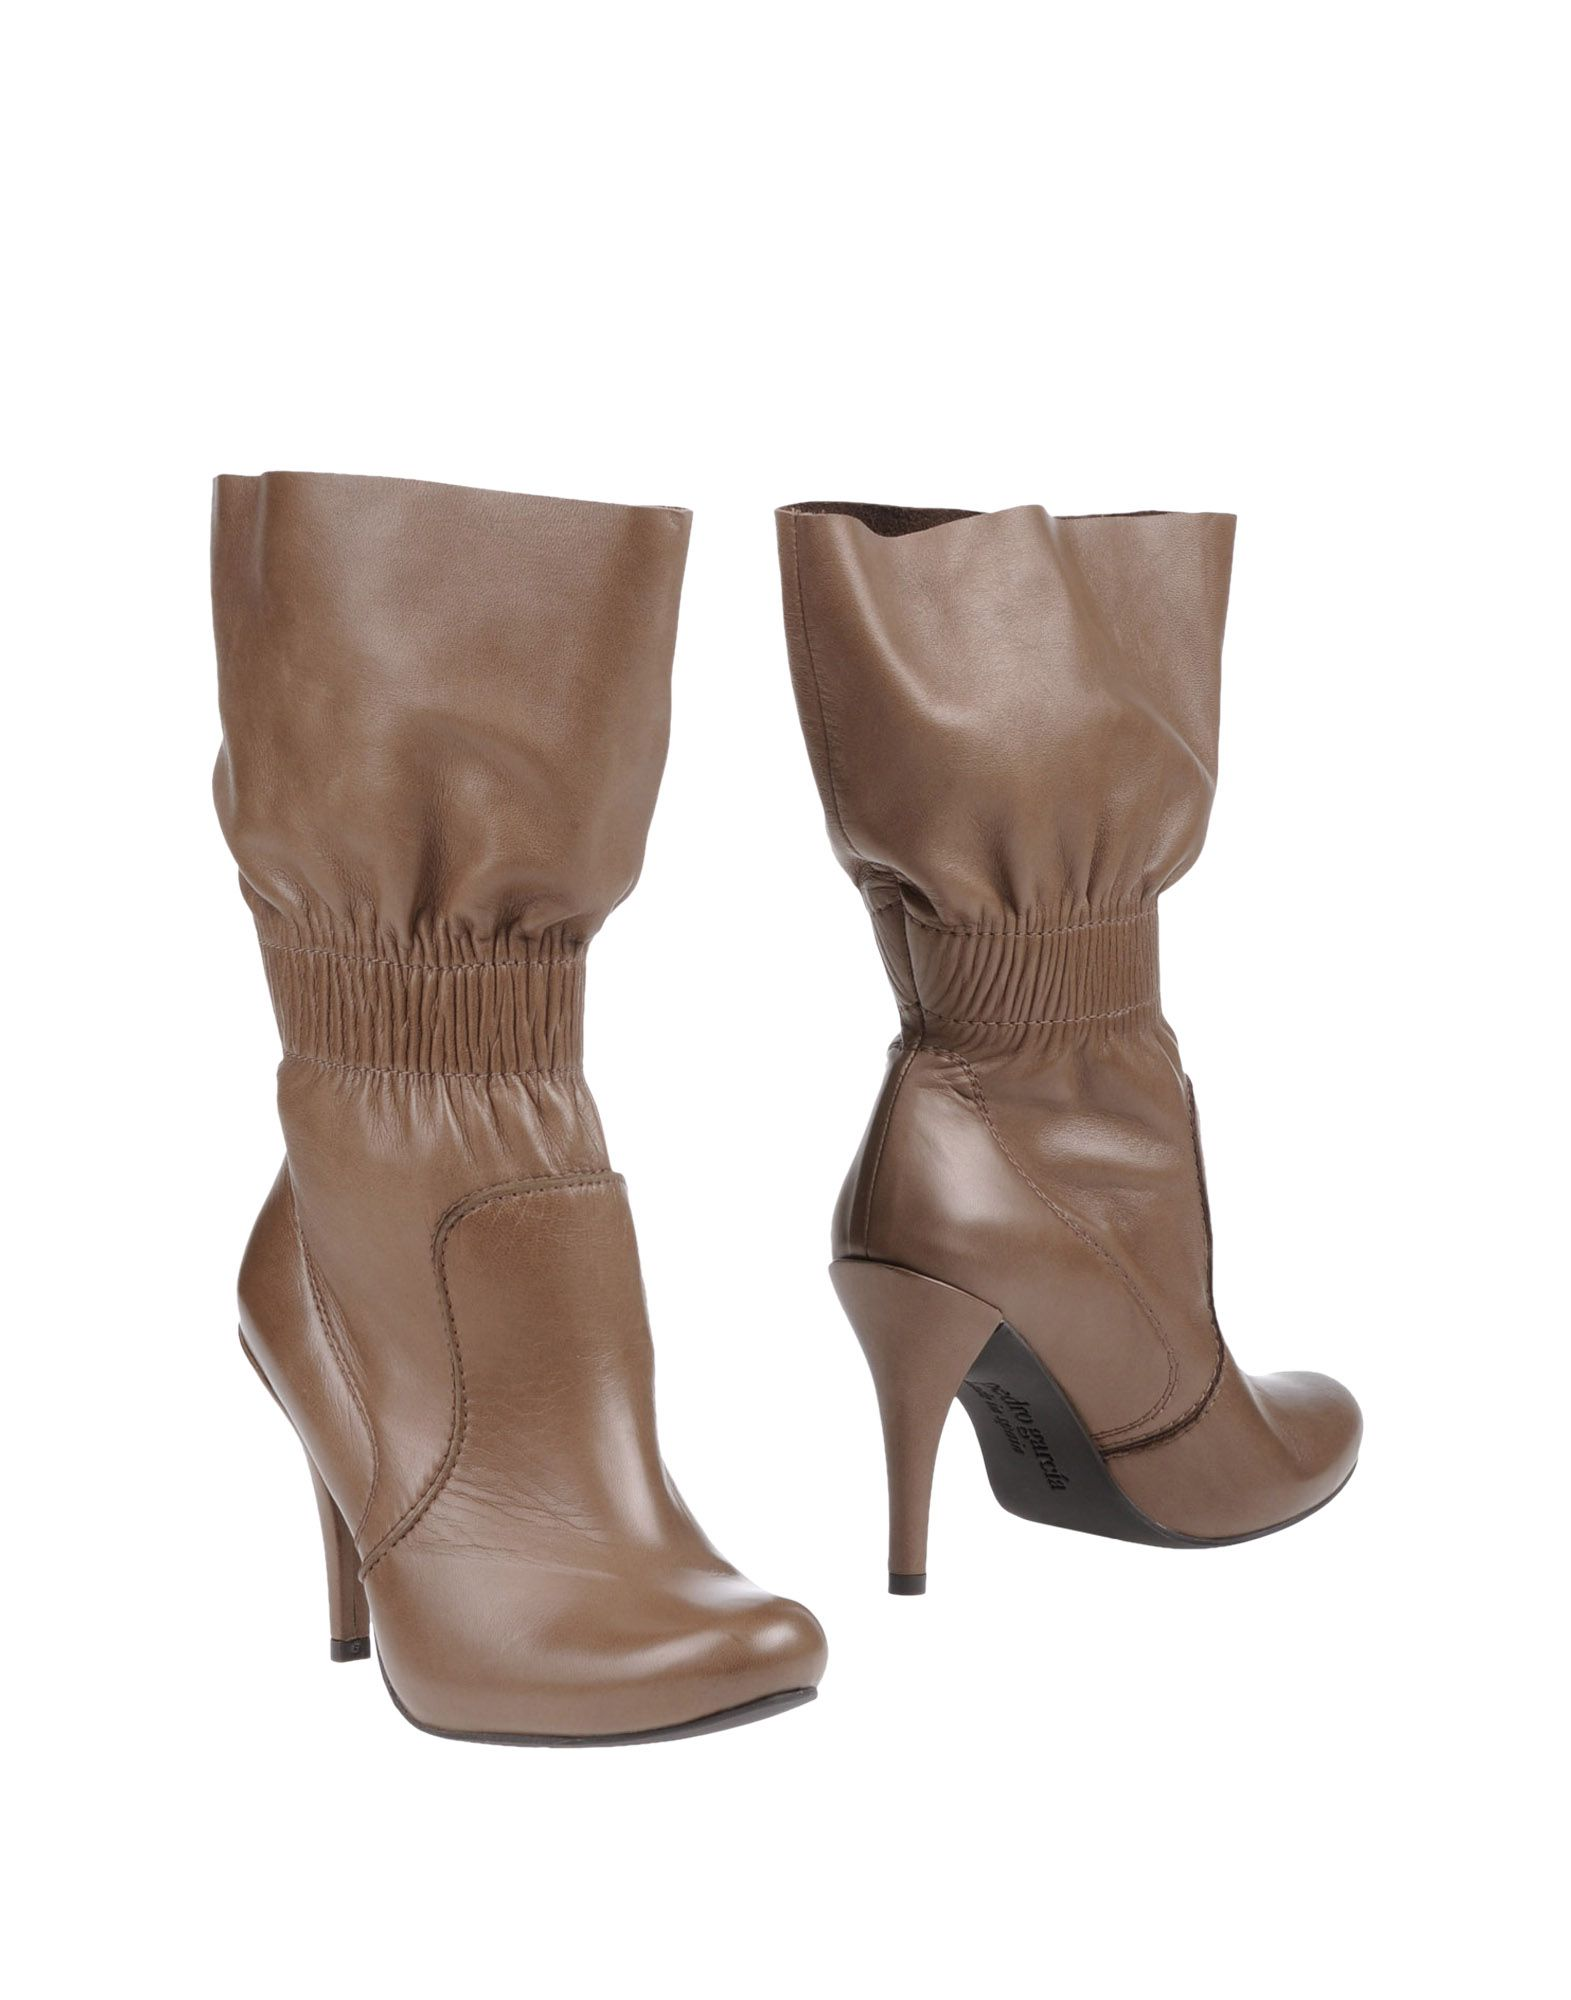 pedro garcia ankle boots in khaki lyst